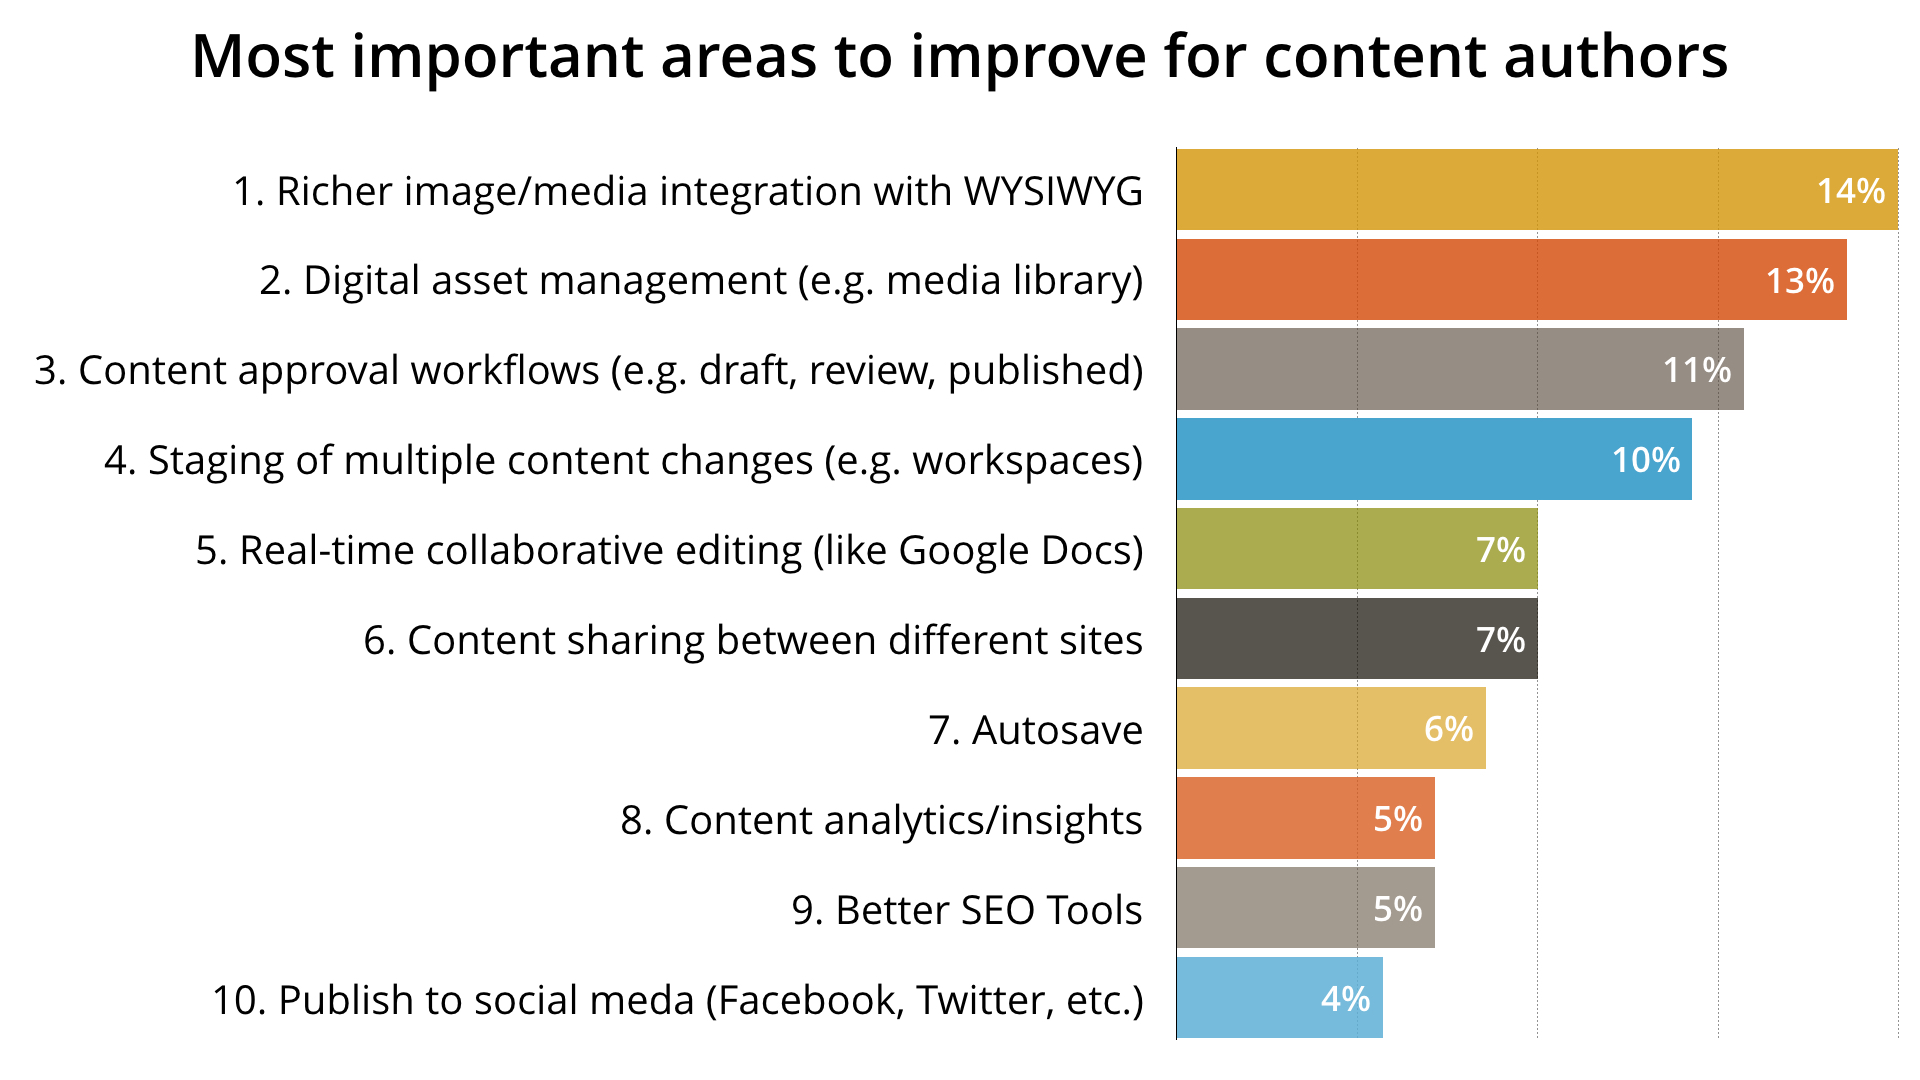 Survey results from content editors in 2016